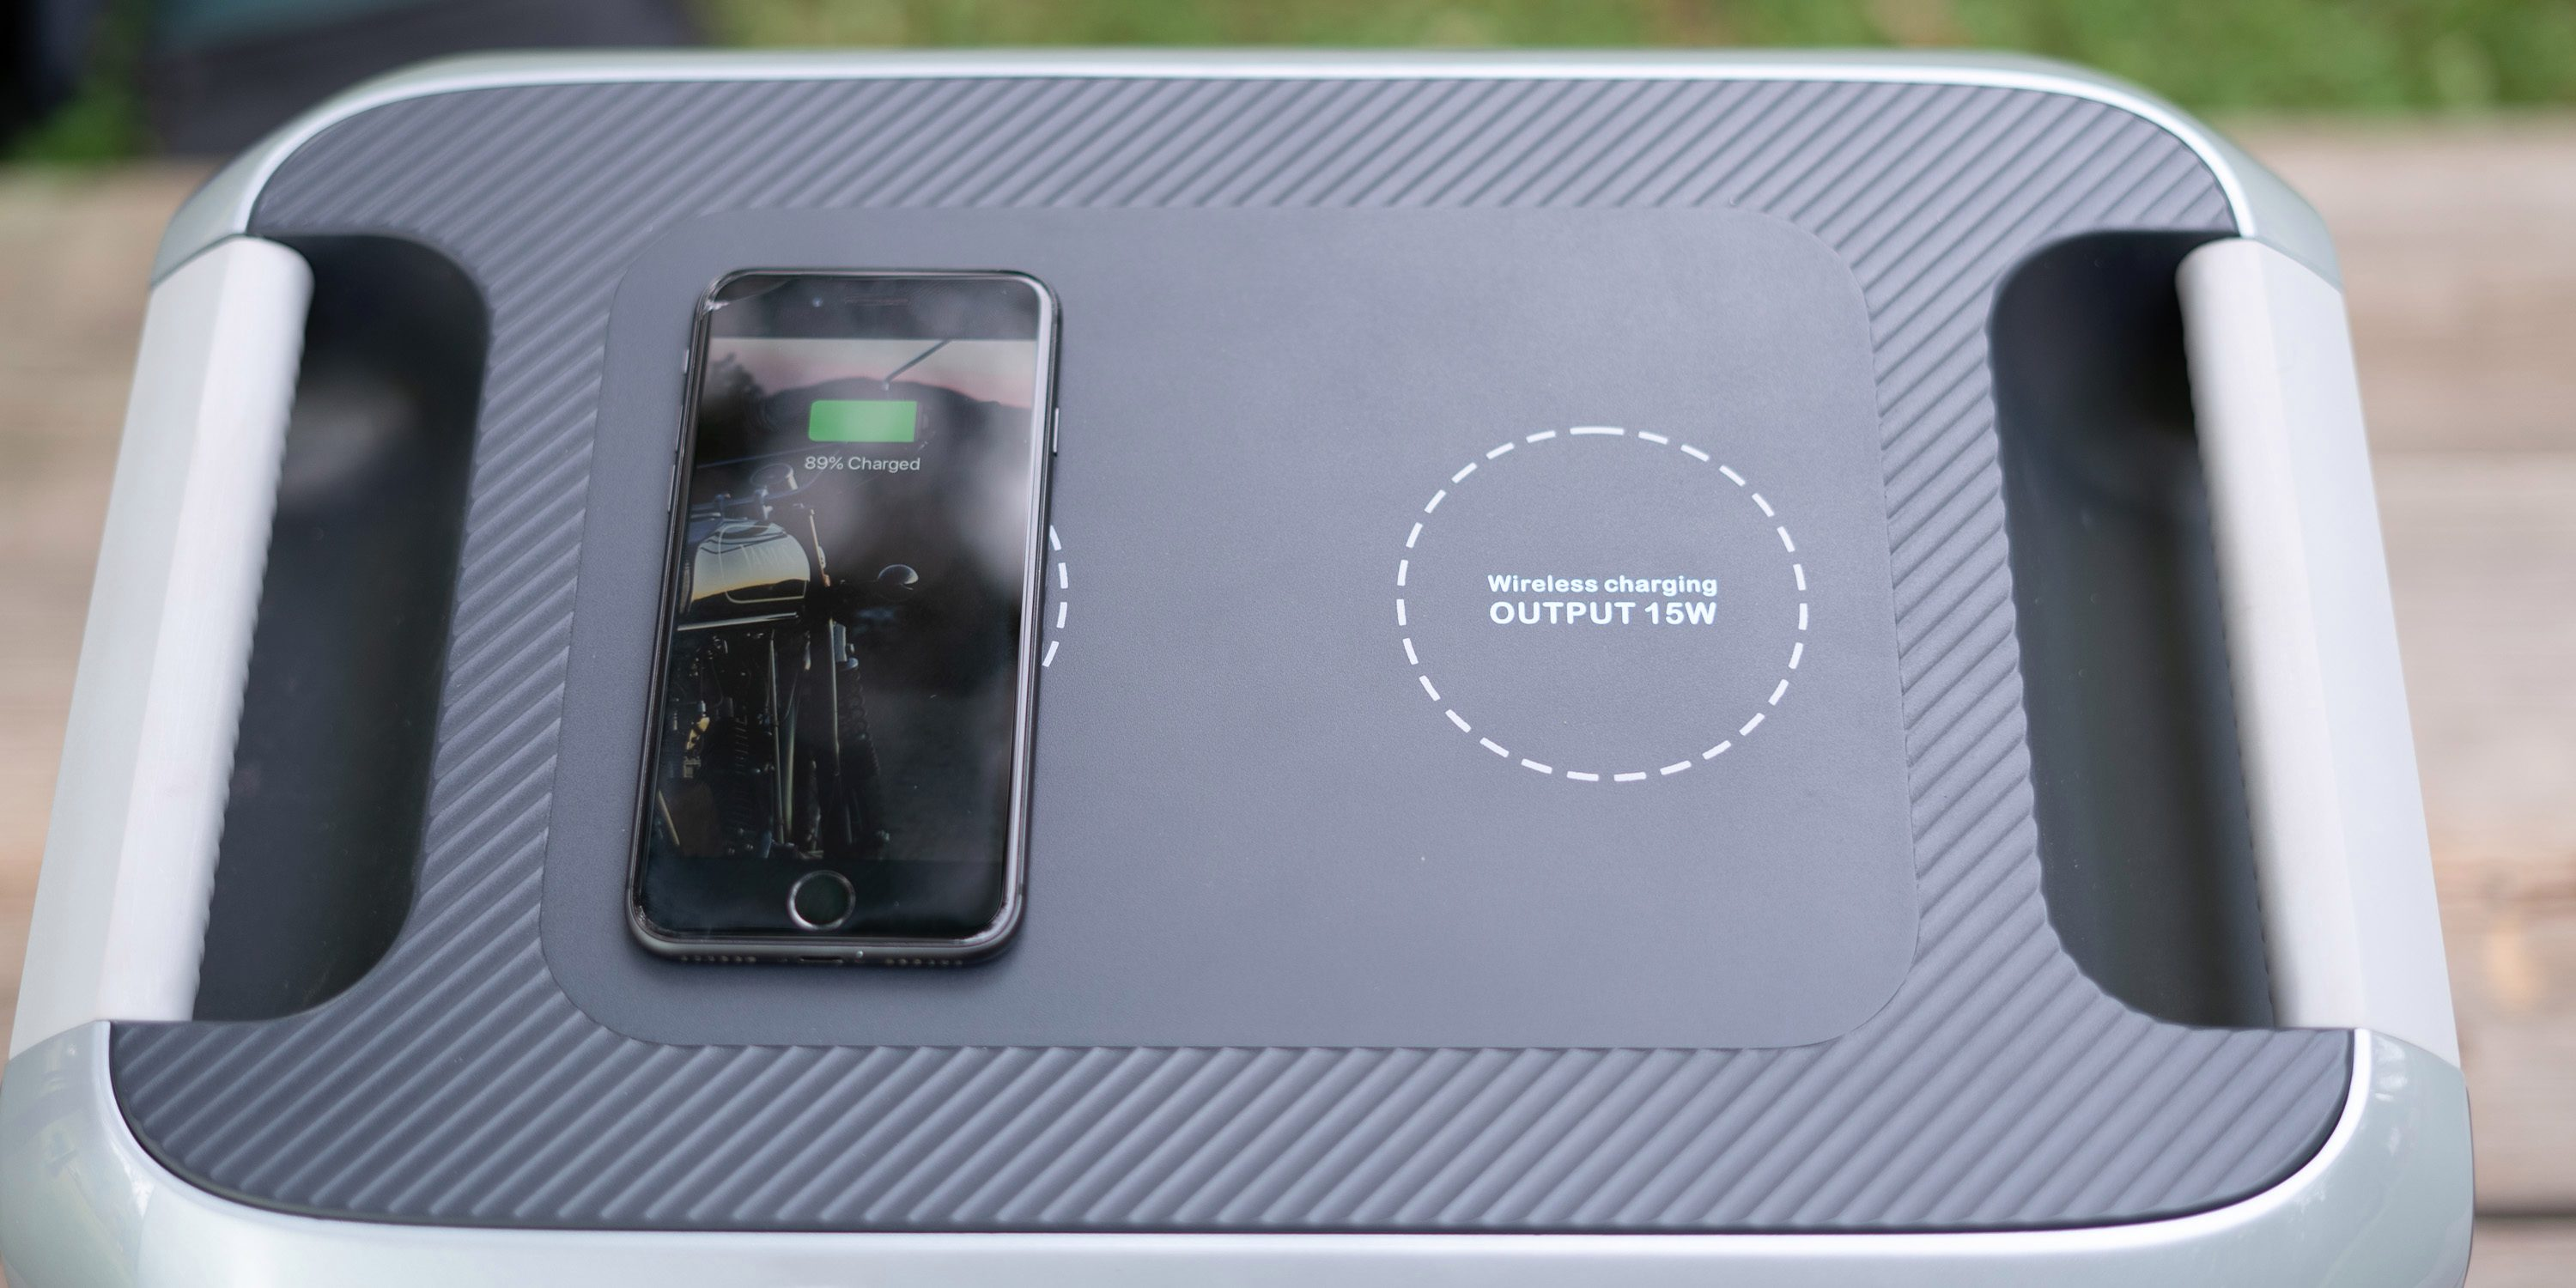 Wireless charging an iPhone on the Bluetti AC200 power station